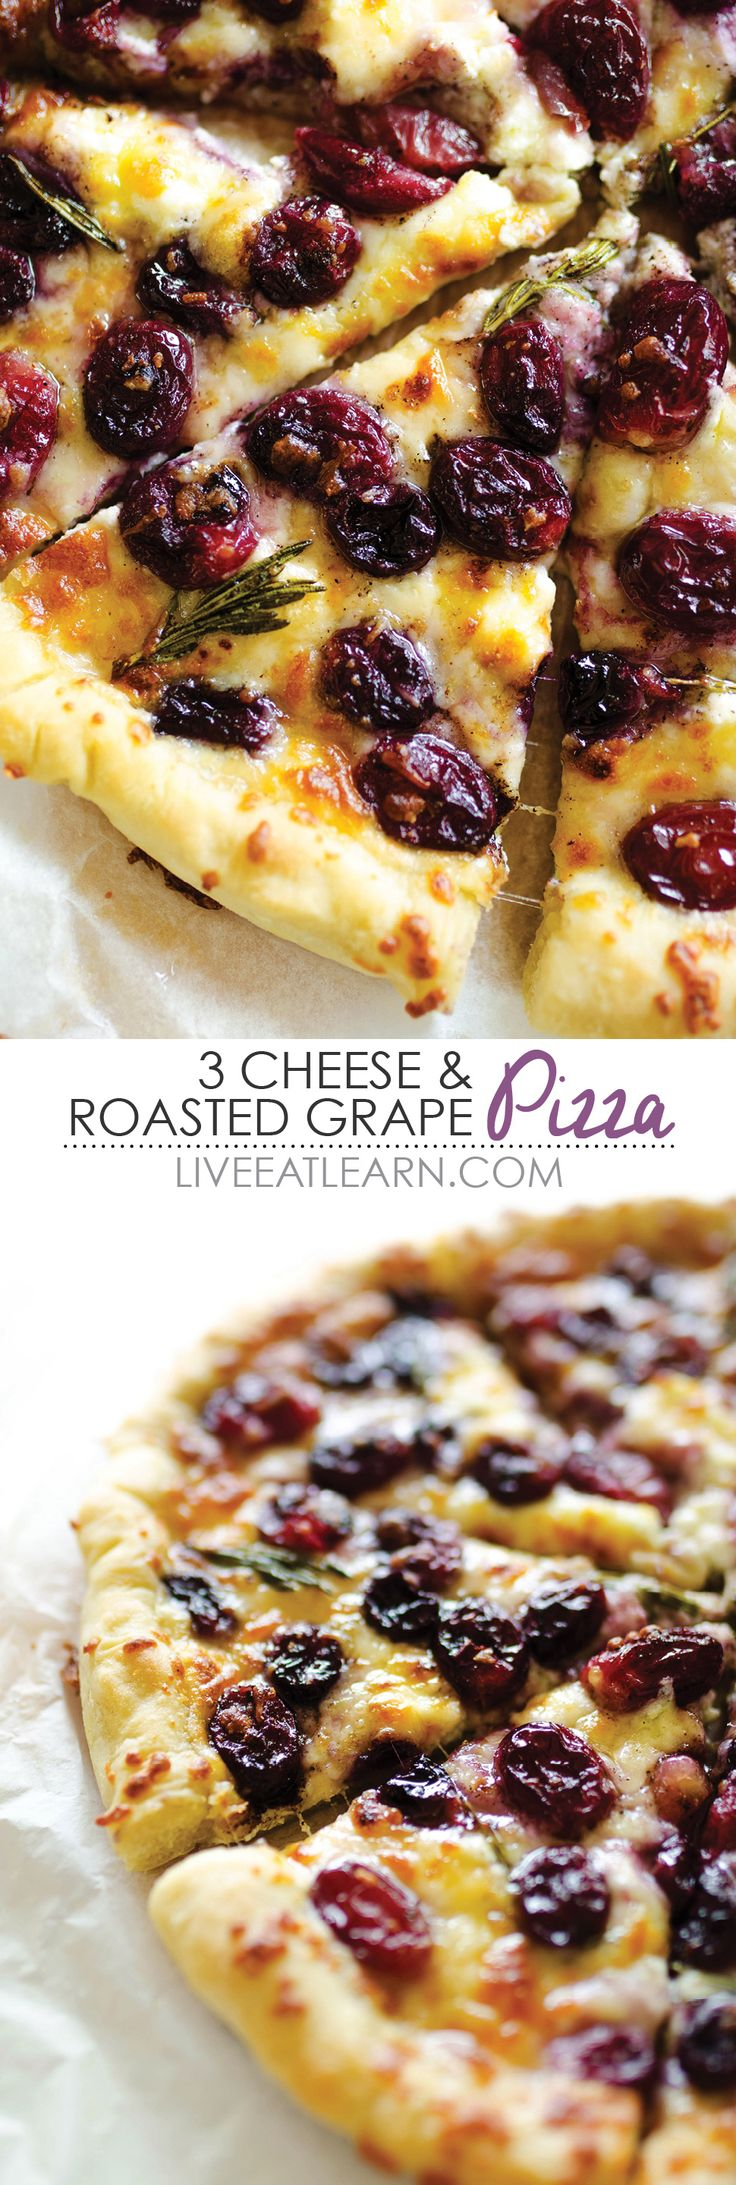 This 3 Cheese Roasted Grape Pizza recipe is packed with creamy ricotta, mozzarella, and parmesan cheese, and is topped with savory, rosemary infused roasted red grapes. This is a healthy, addictive vegetarian pizza that you'll want to make for dinner every night!// Live Eat Learn